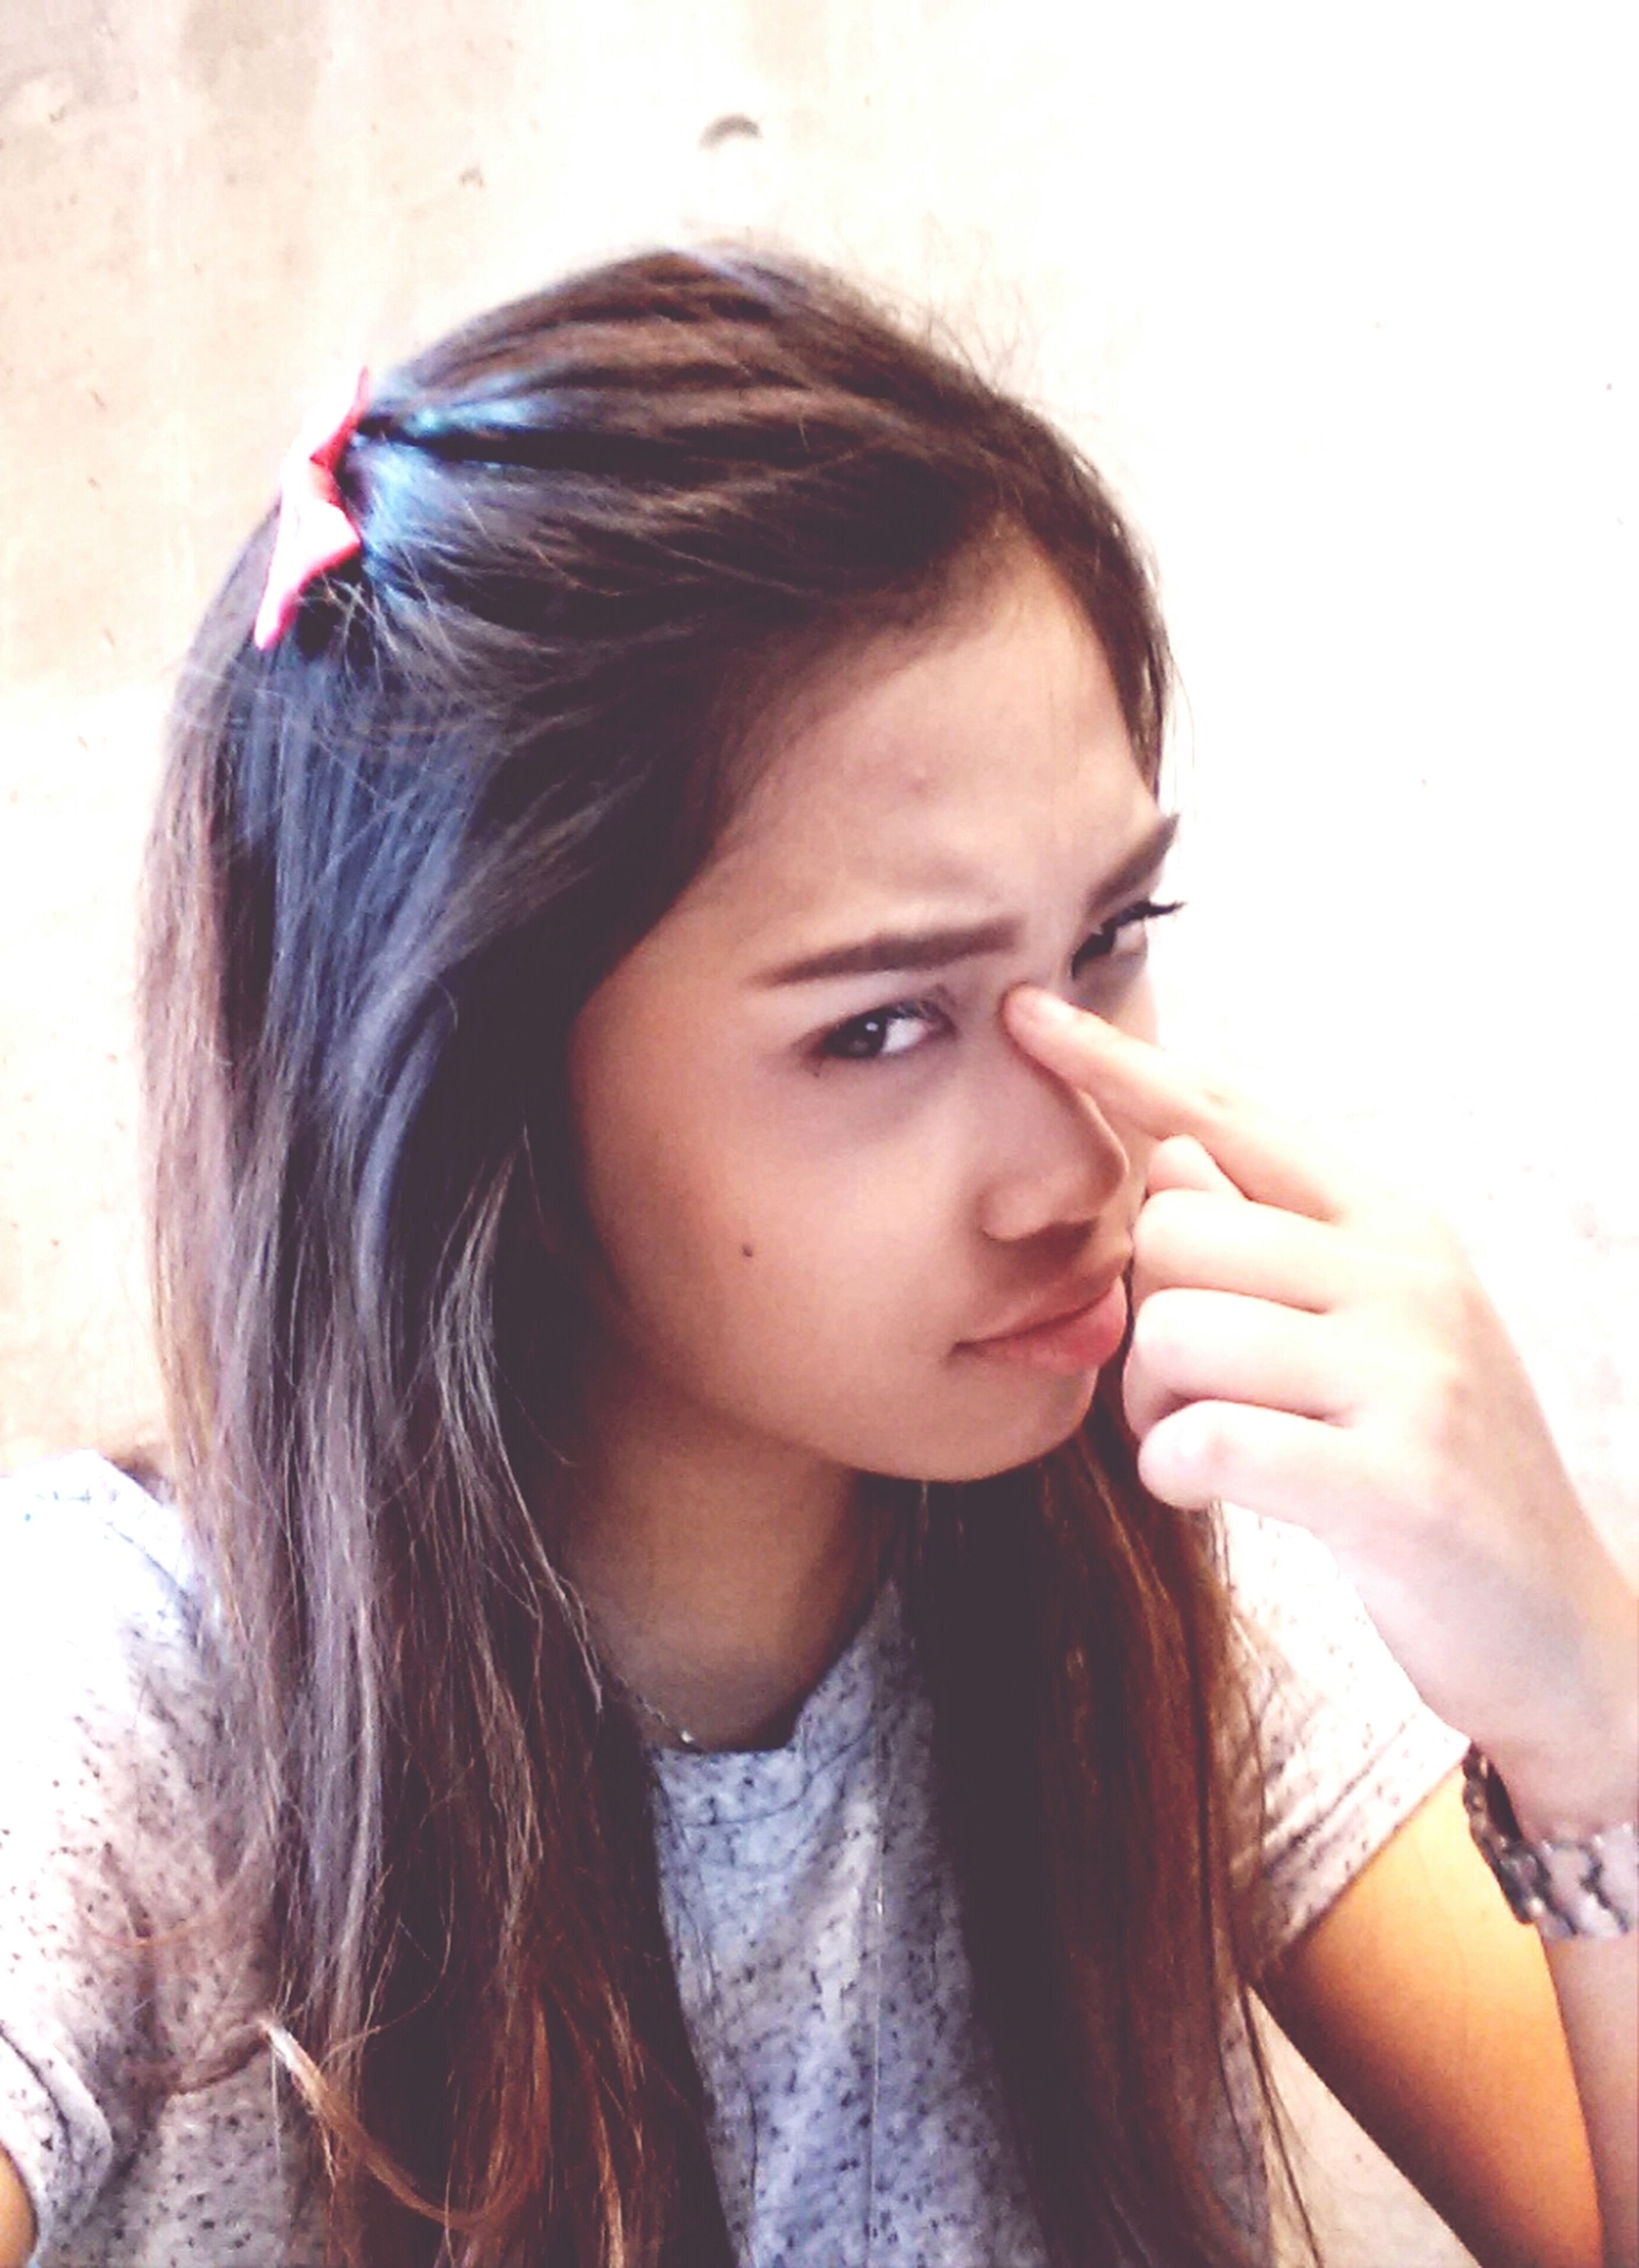 young adult, young women, indoors, headshot, person, portrait, looking at camera, lifestyles, front view, long hair, wall - building feature, close-up, human face, contemplation, black hair, head and shoulders, leisure activity